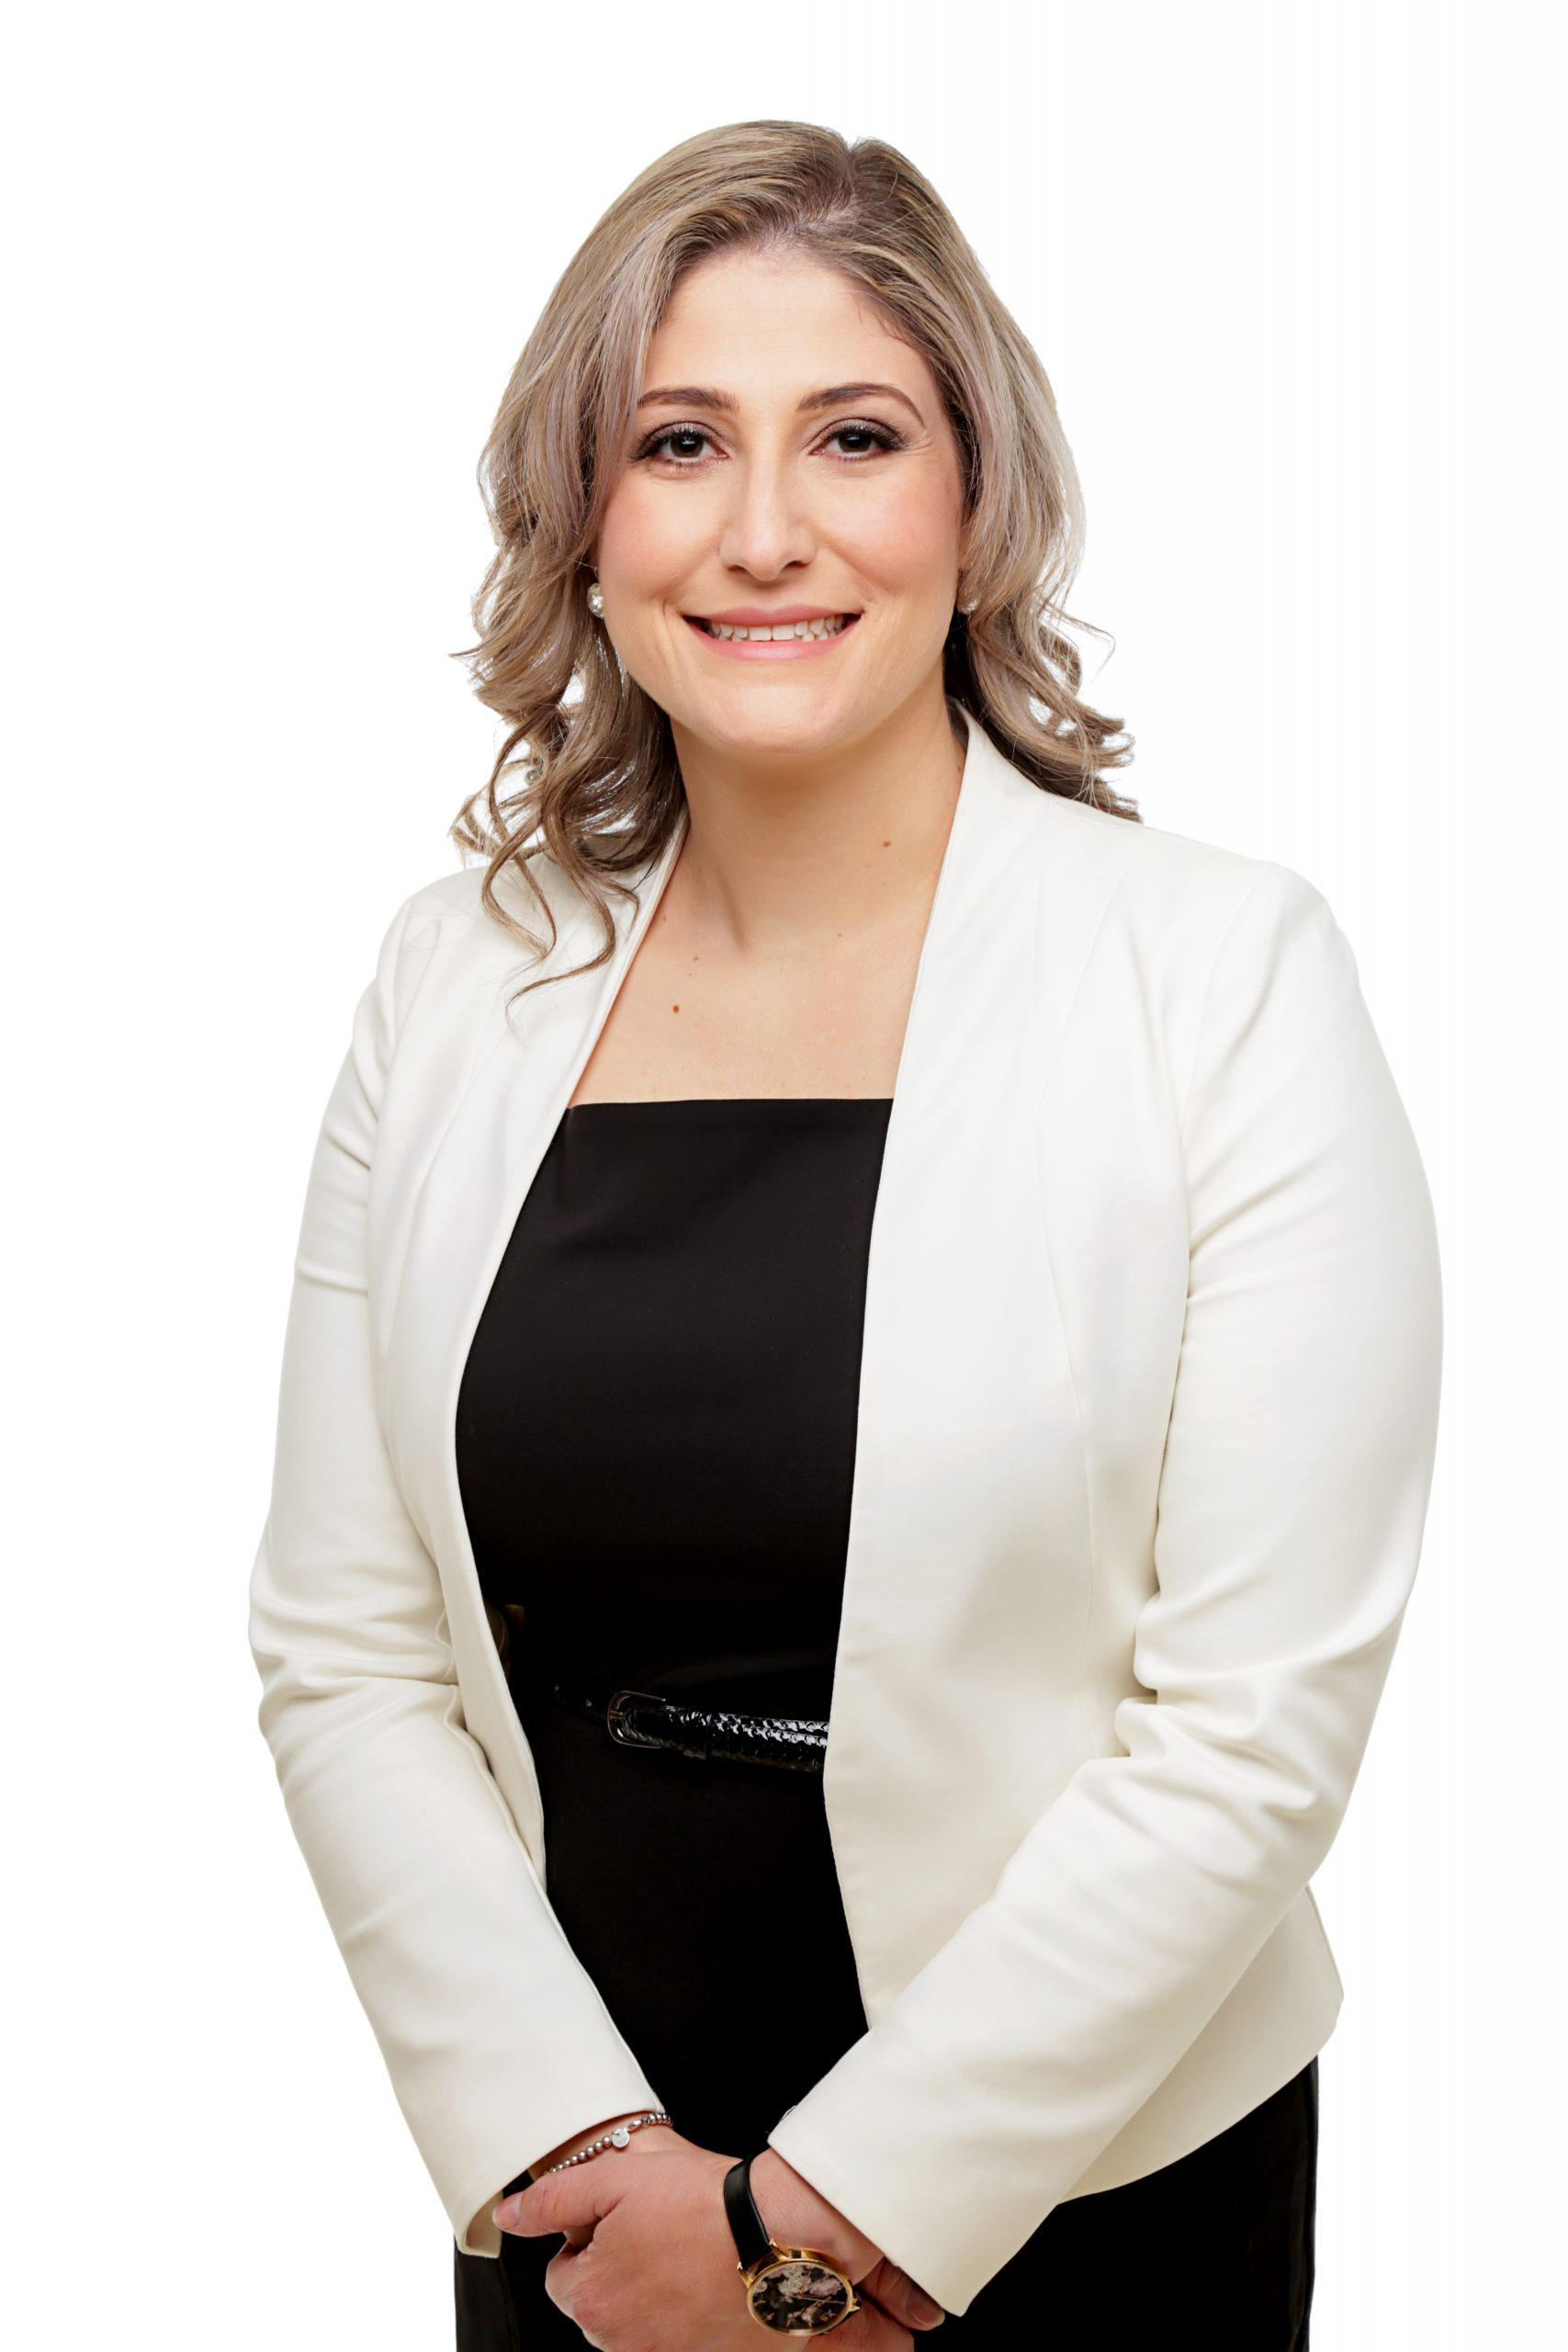 Rosemary Aloisio - Accredited Family Law Specialists